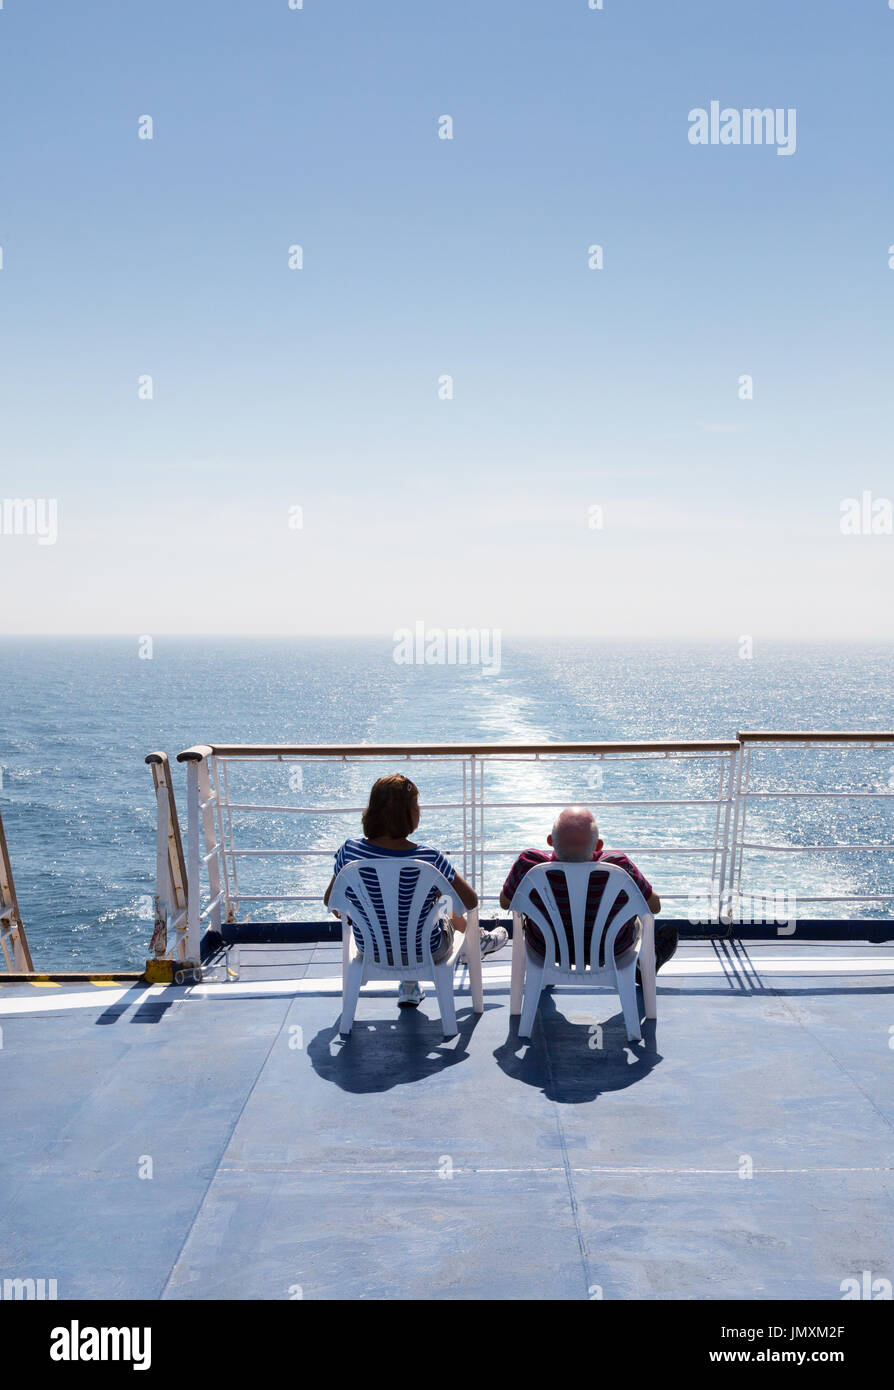 Couple cruising on a cross channel  ferry,  Brittany Ferry 'Bretagne', Brittany Ferries, from Portsmouth UK to St Malo France, Europe - Stock Image